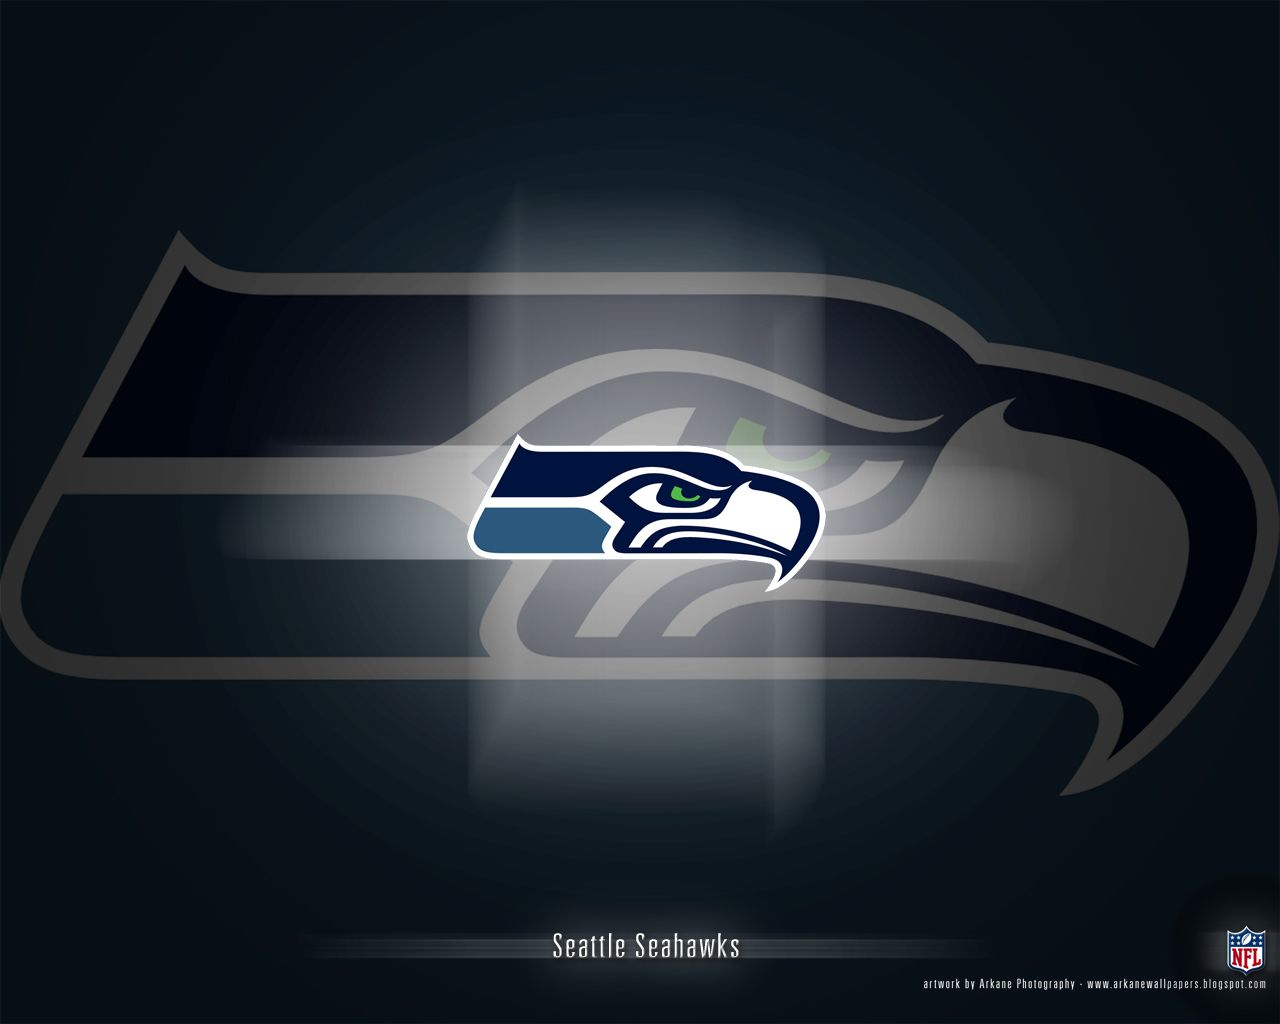 seahawks images Arkane NFL Wallpapers Seattle Seahawks